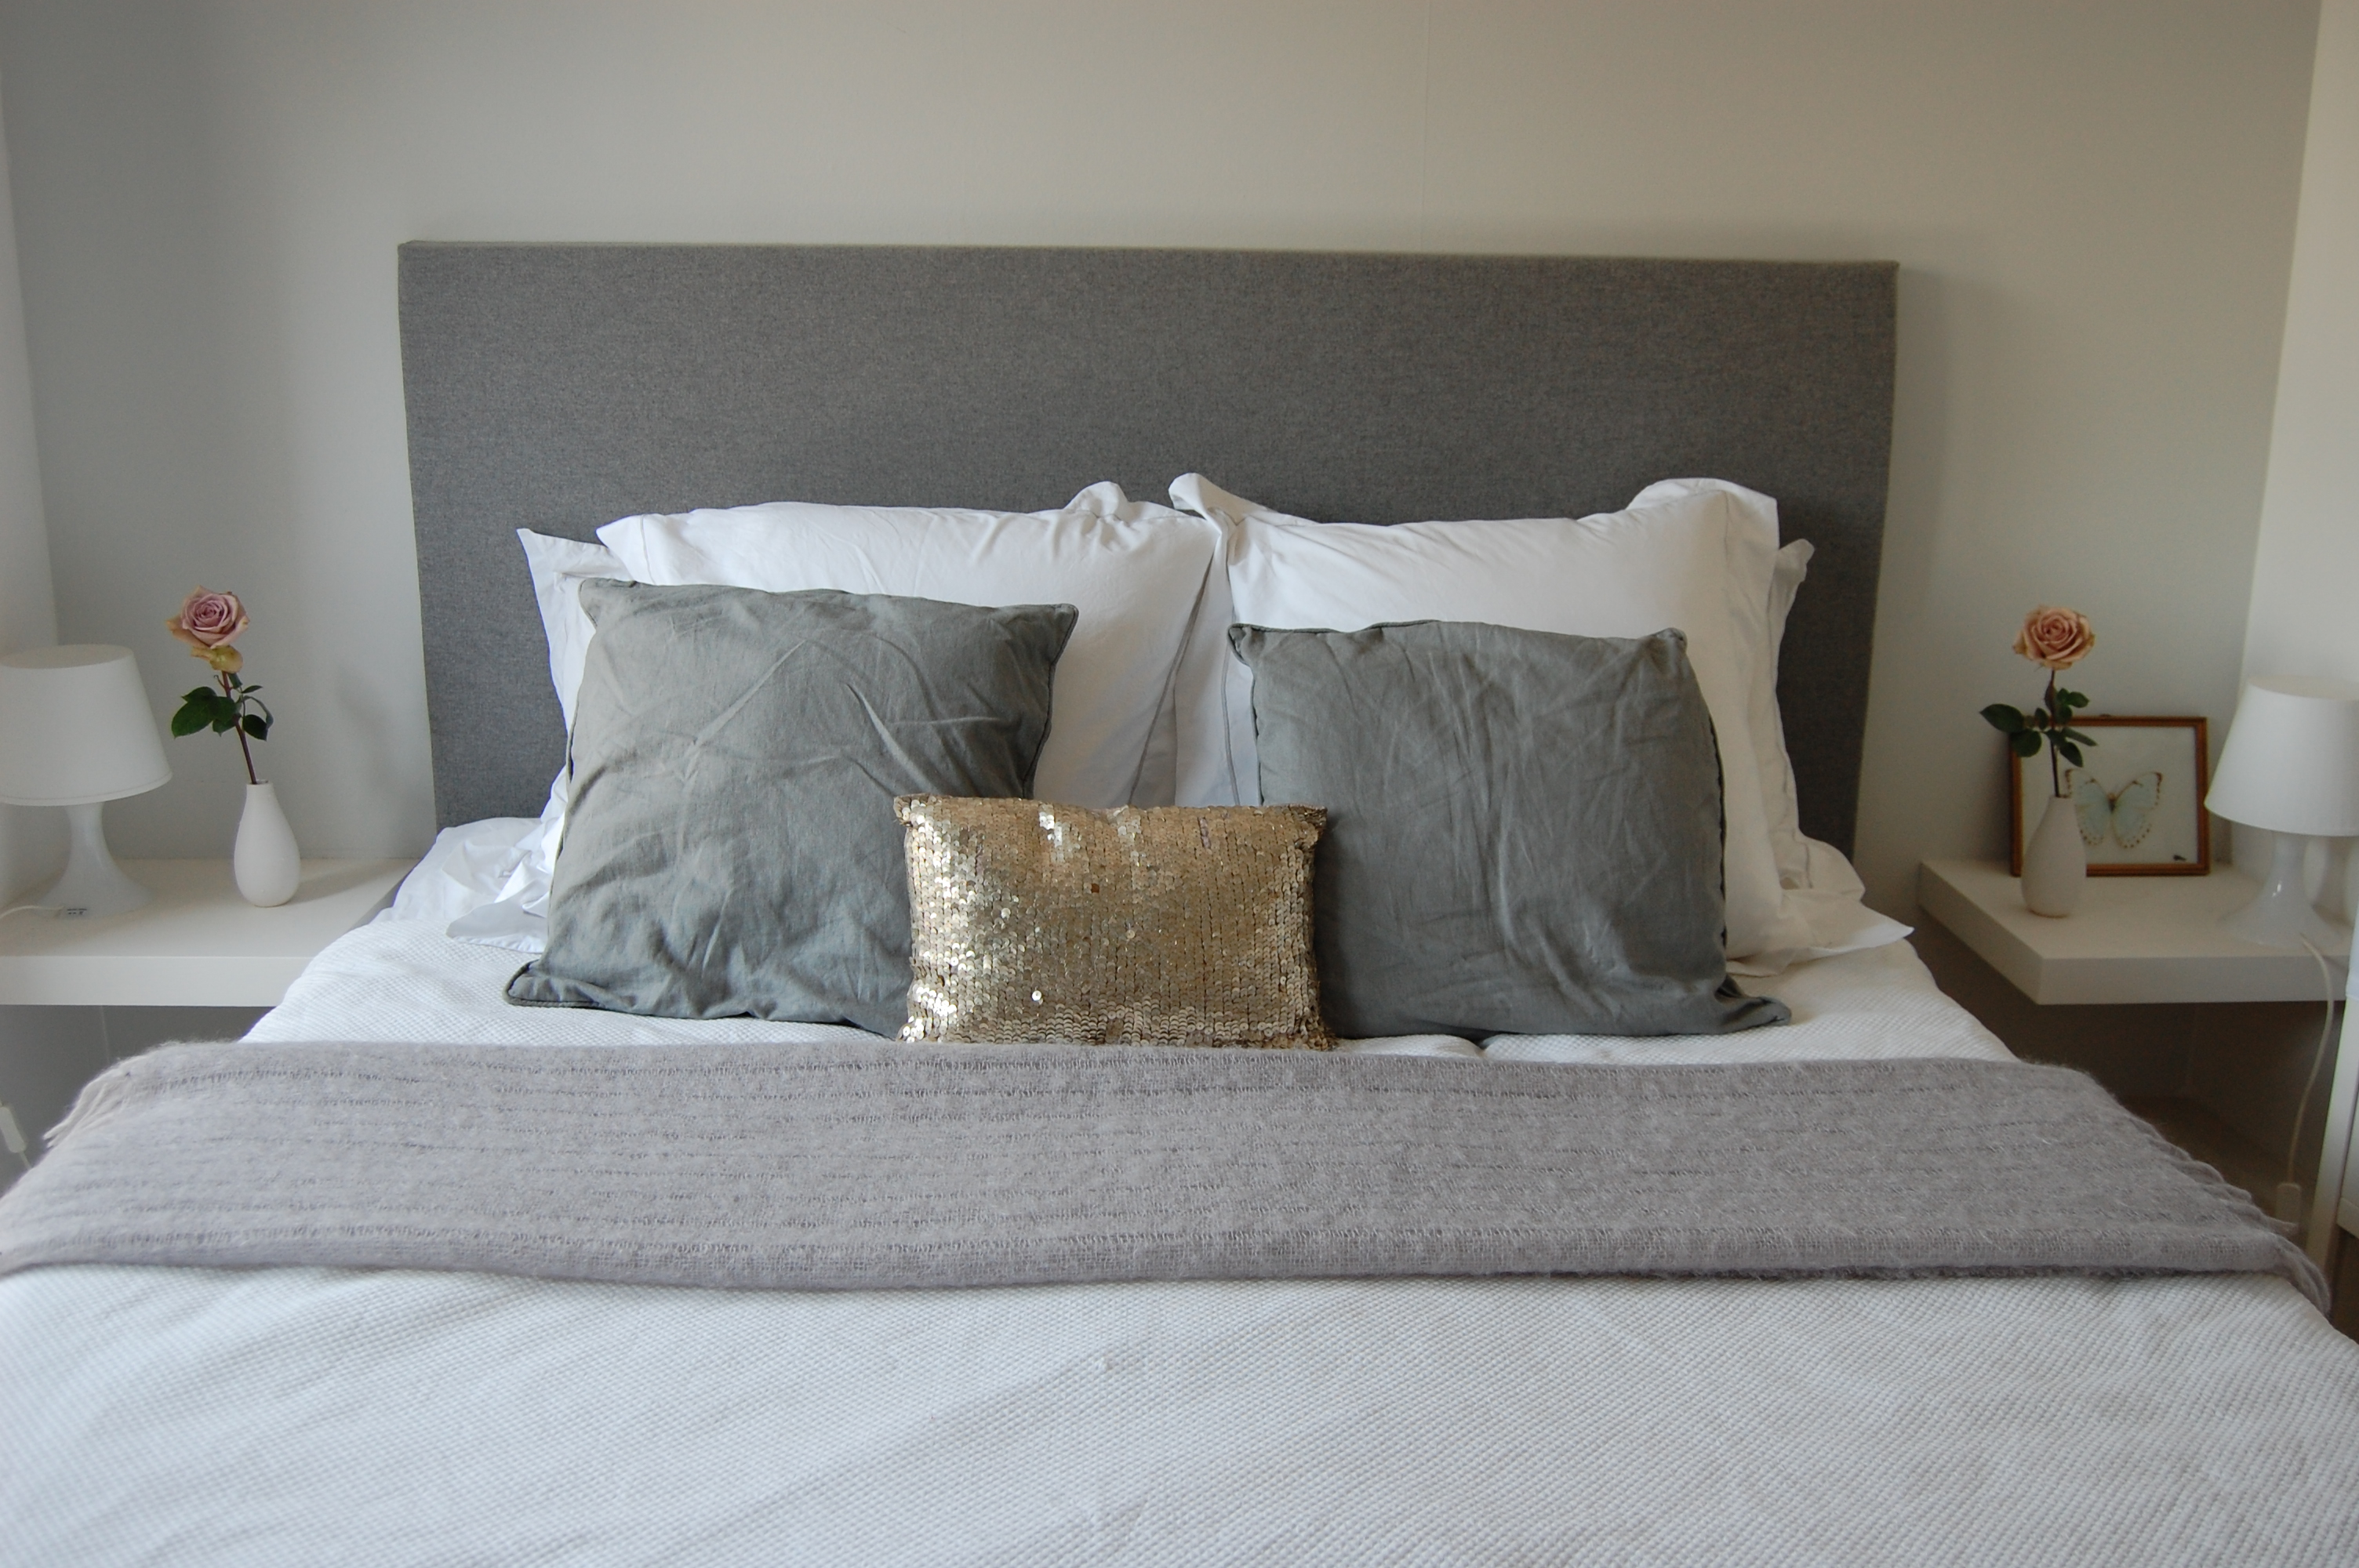 How to make a headboard emily wheeler Make your own headboard